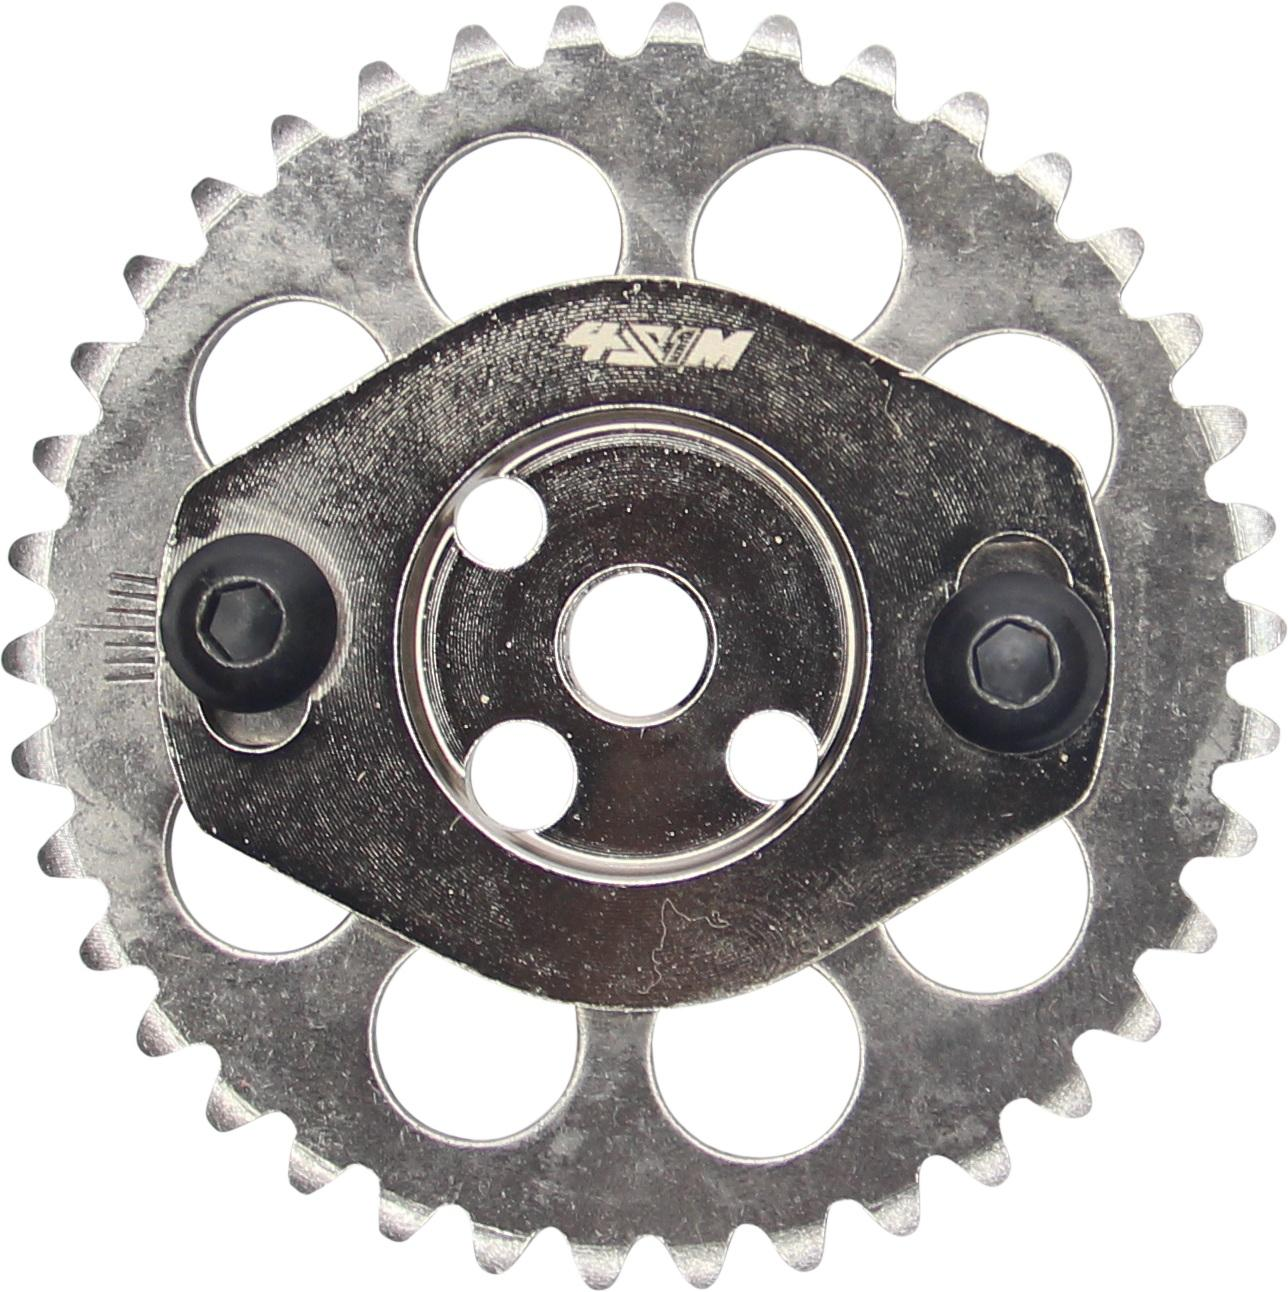 4s1m Adjustable Timing Gear (sniper) By Racing Force Marketing.